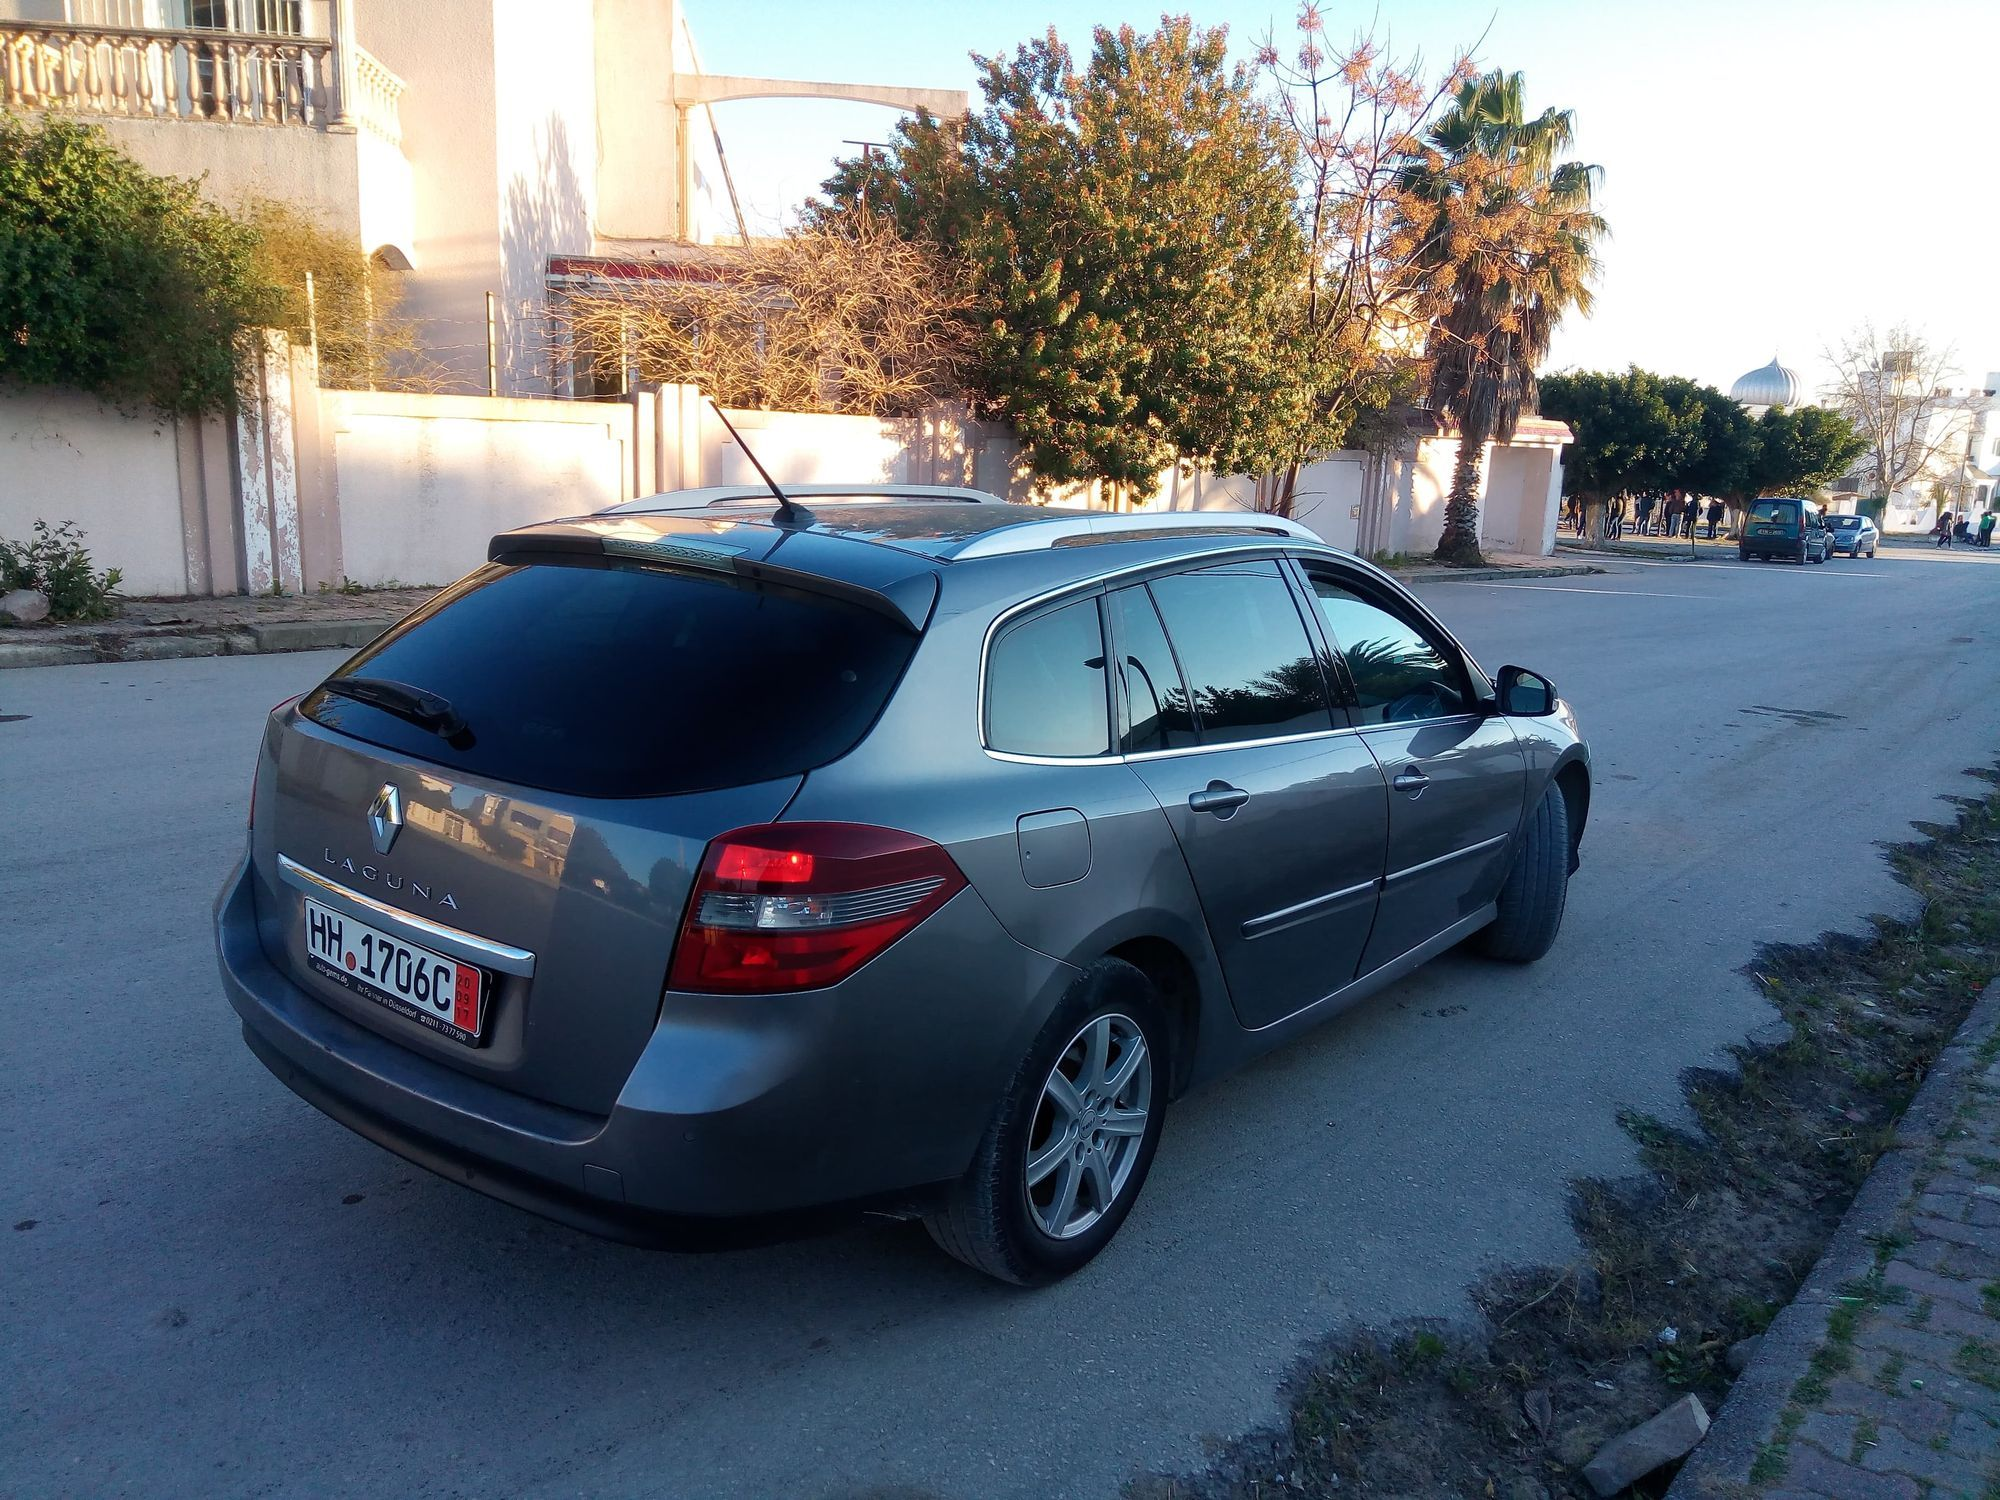 vente voiture occasion tunisie renault laguna estate